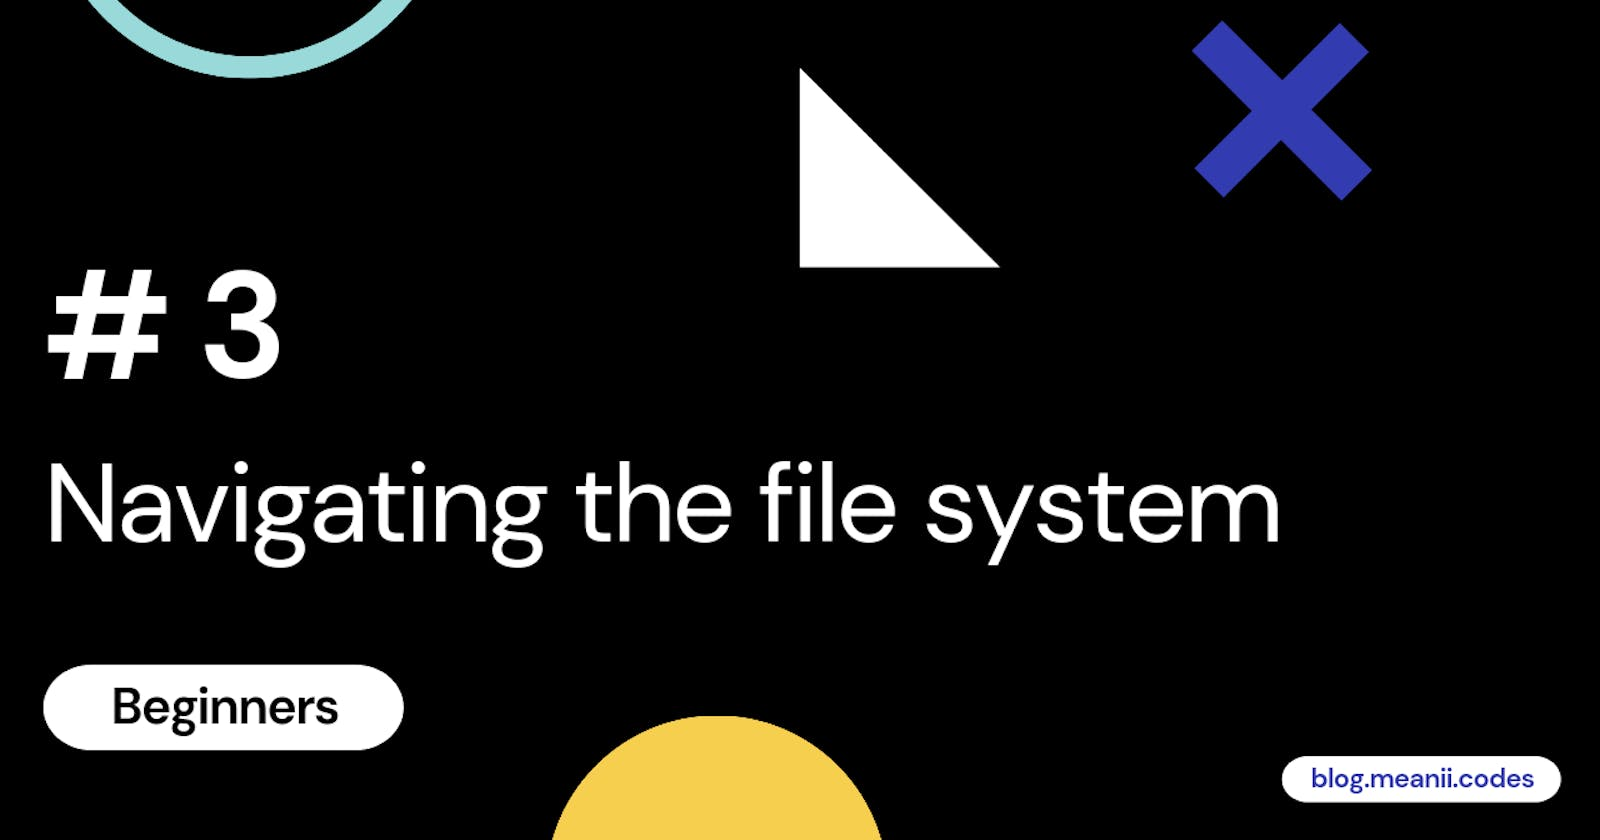 # 3 Beginners - Navigating the file system